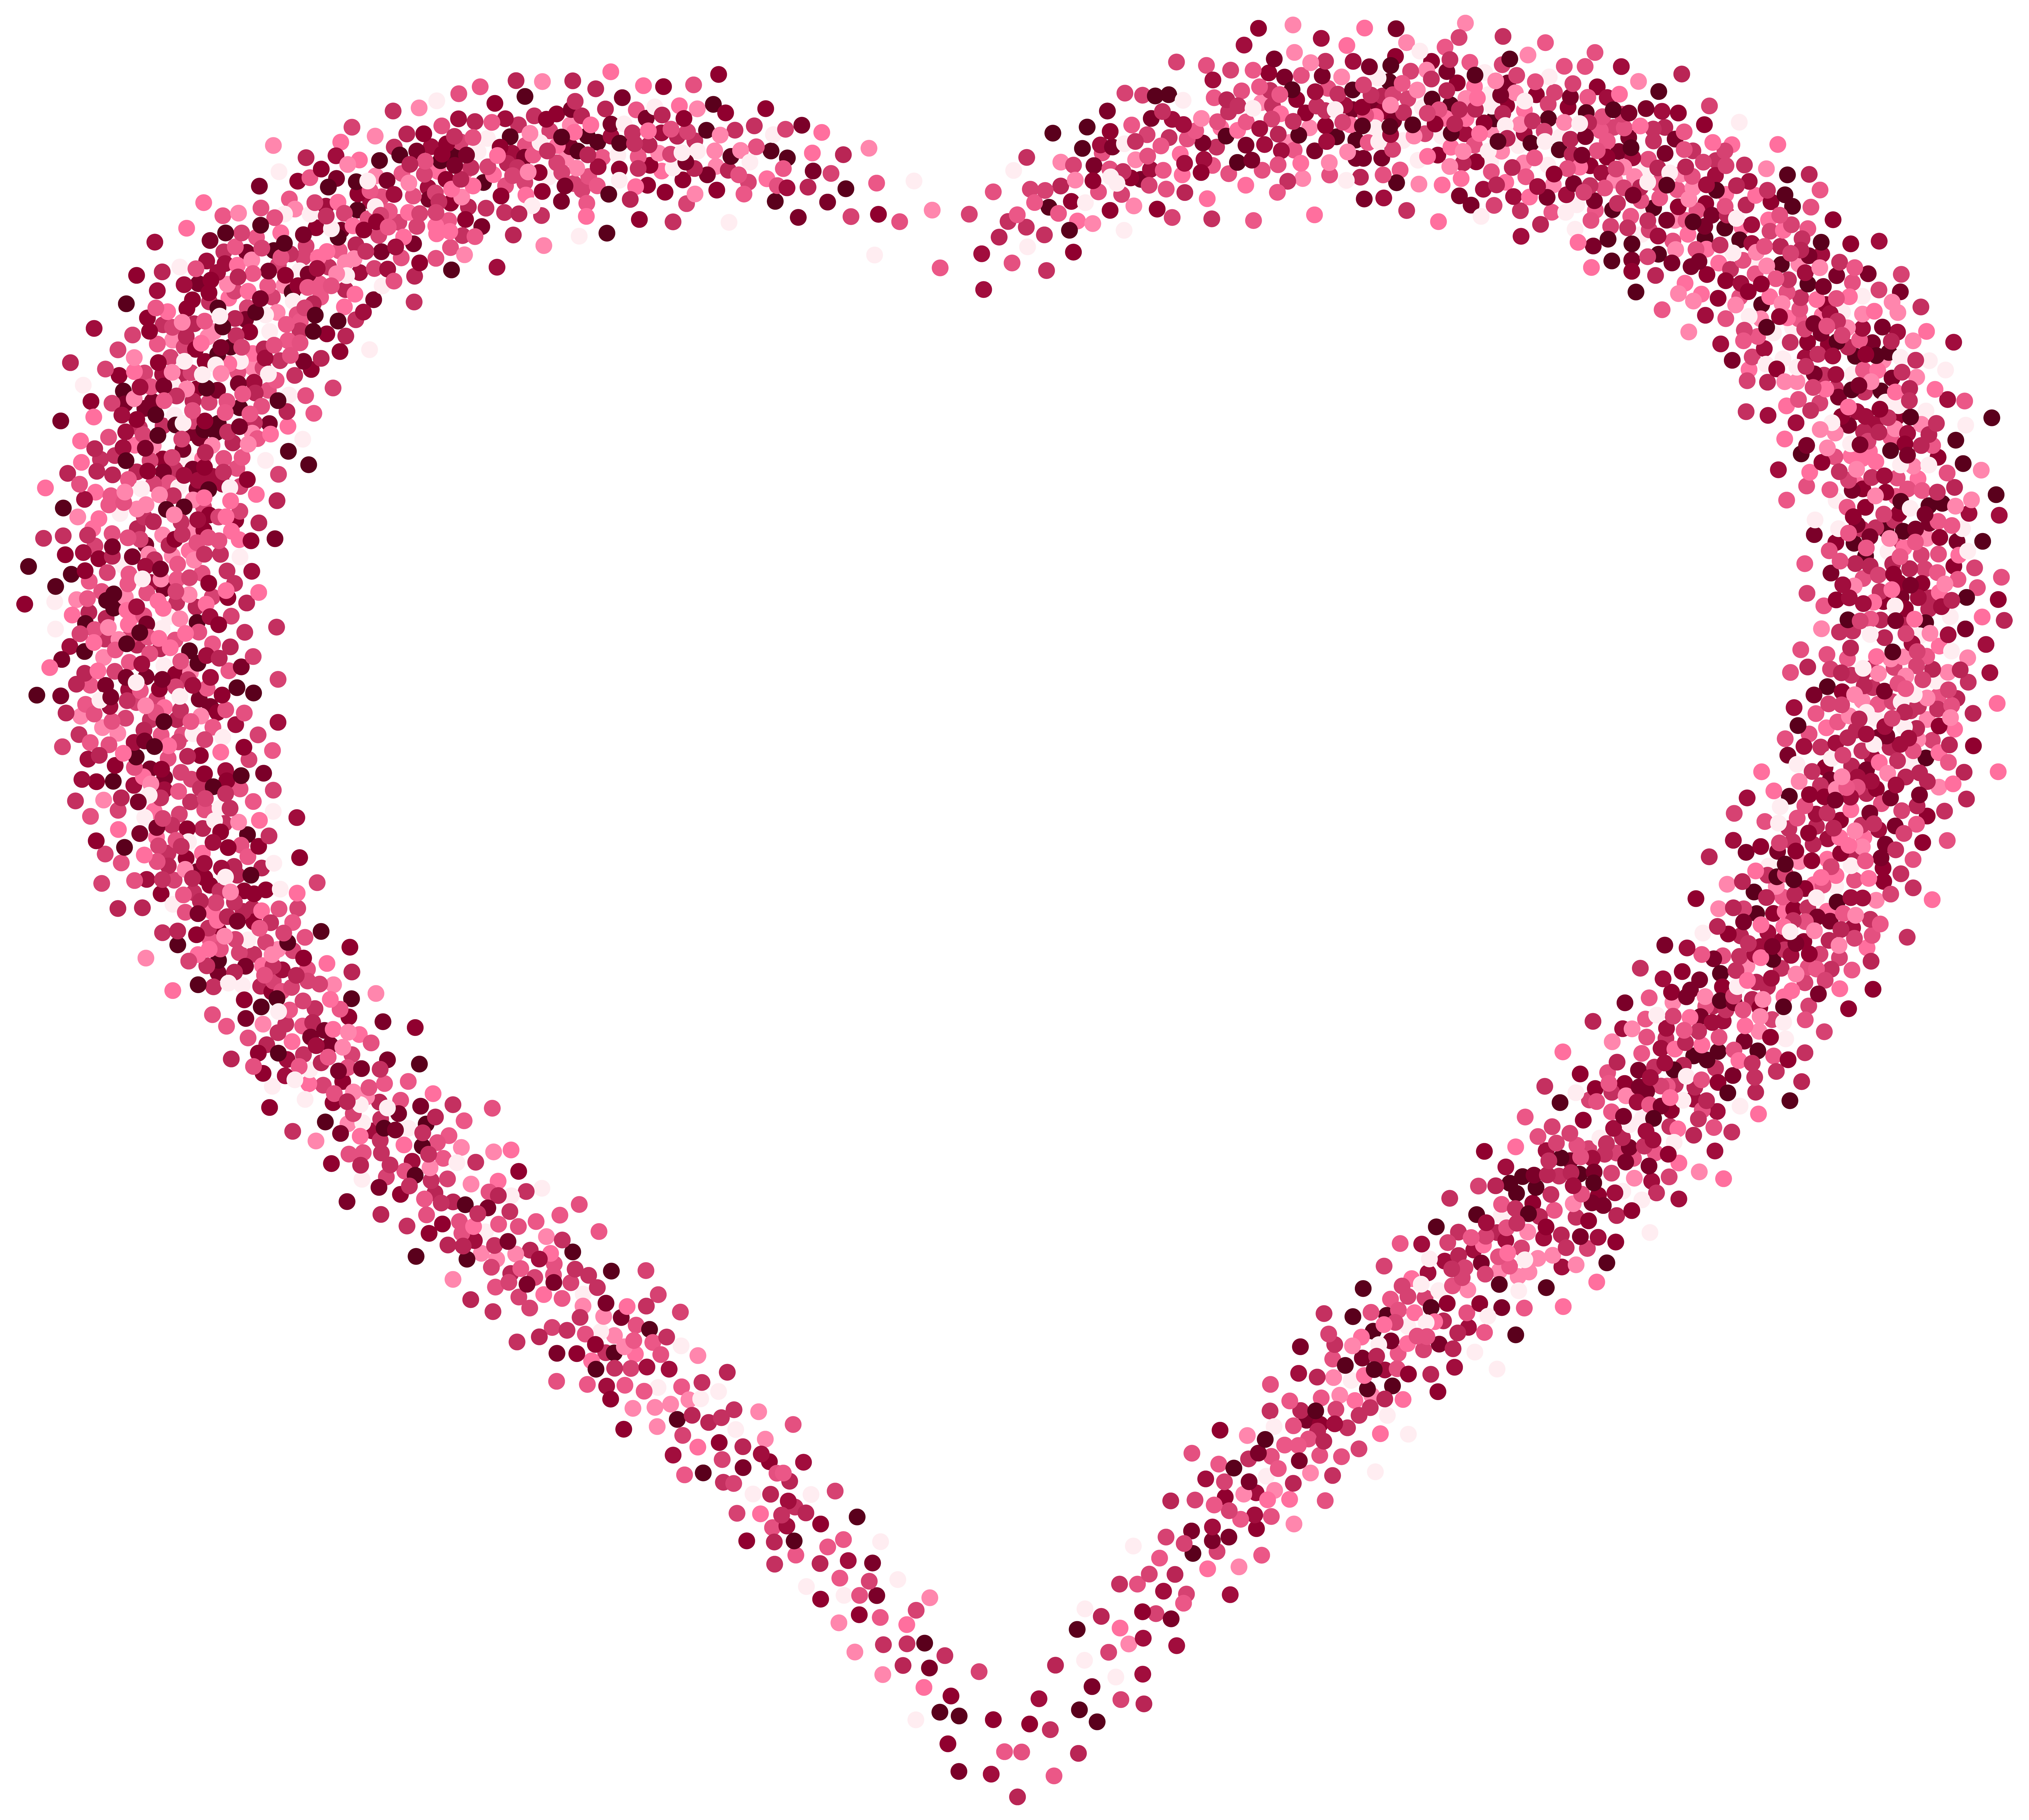 Pink hearts png. Decorative heart image gallery